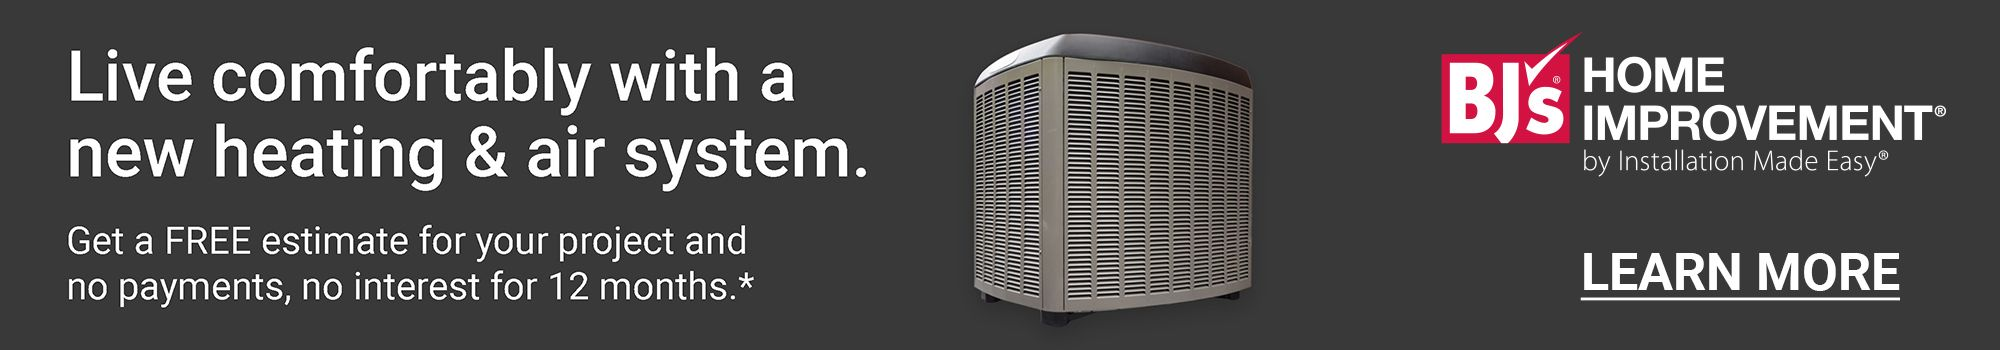 BJ's Home Improvement. Live comfortably with a new heating and air system. Get a FREE estimate for your project and no payments, no interest for 12 months. Click to Learn More.